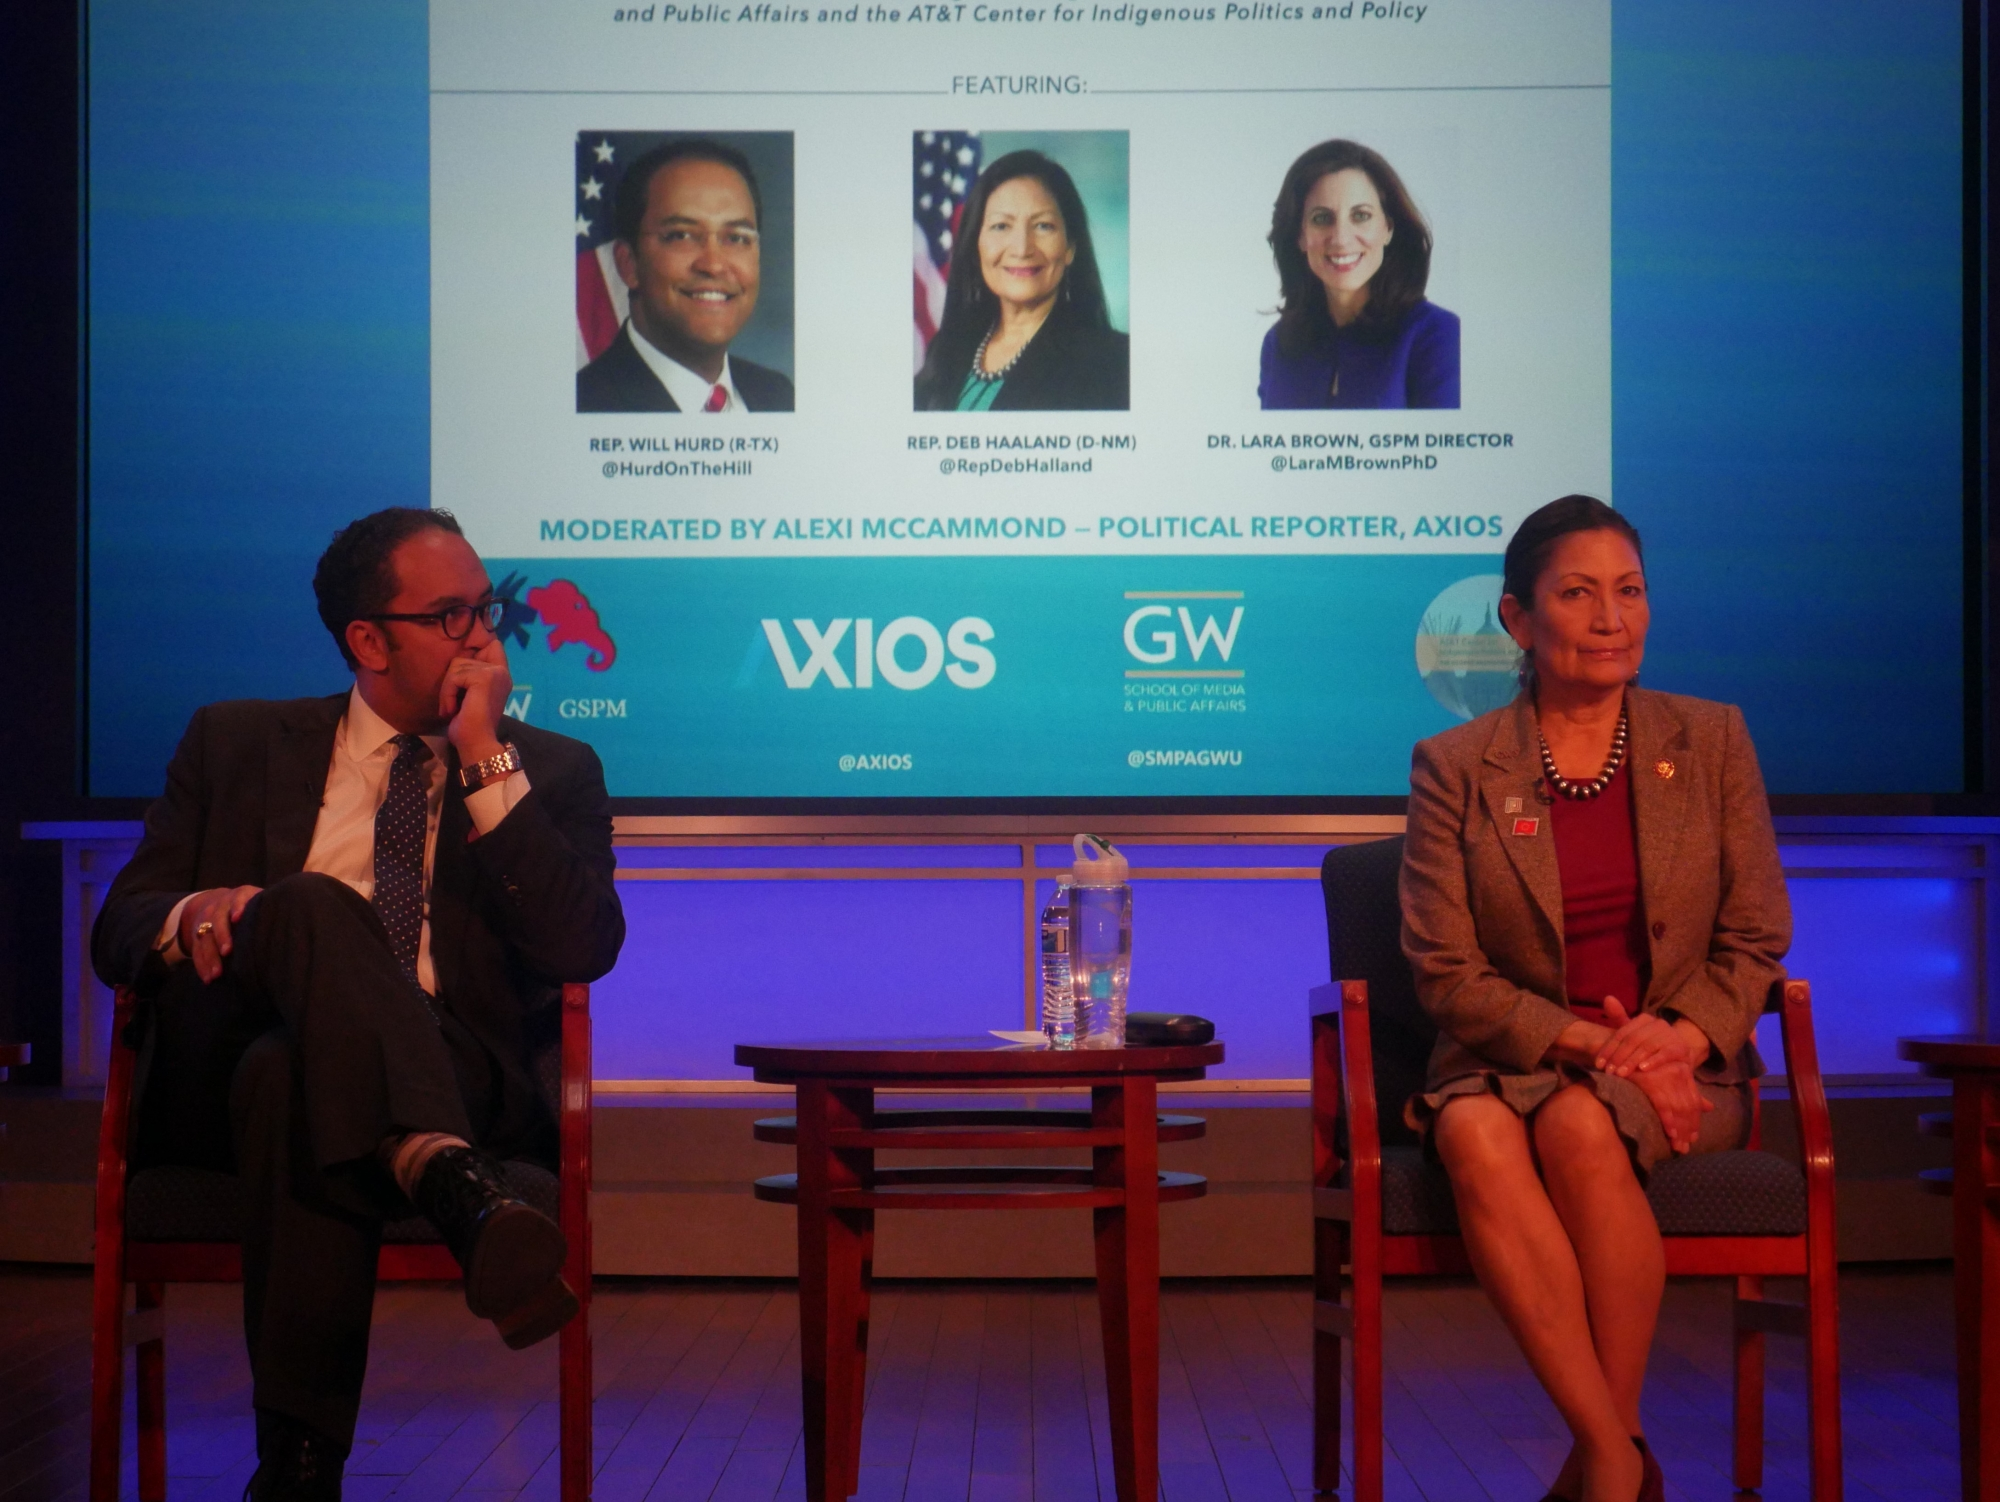 Rep. Will Hurd and Rep. Deb Haaland during opening remarks